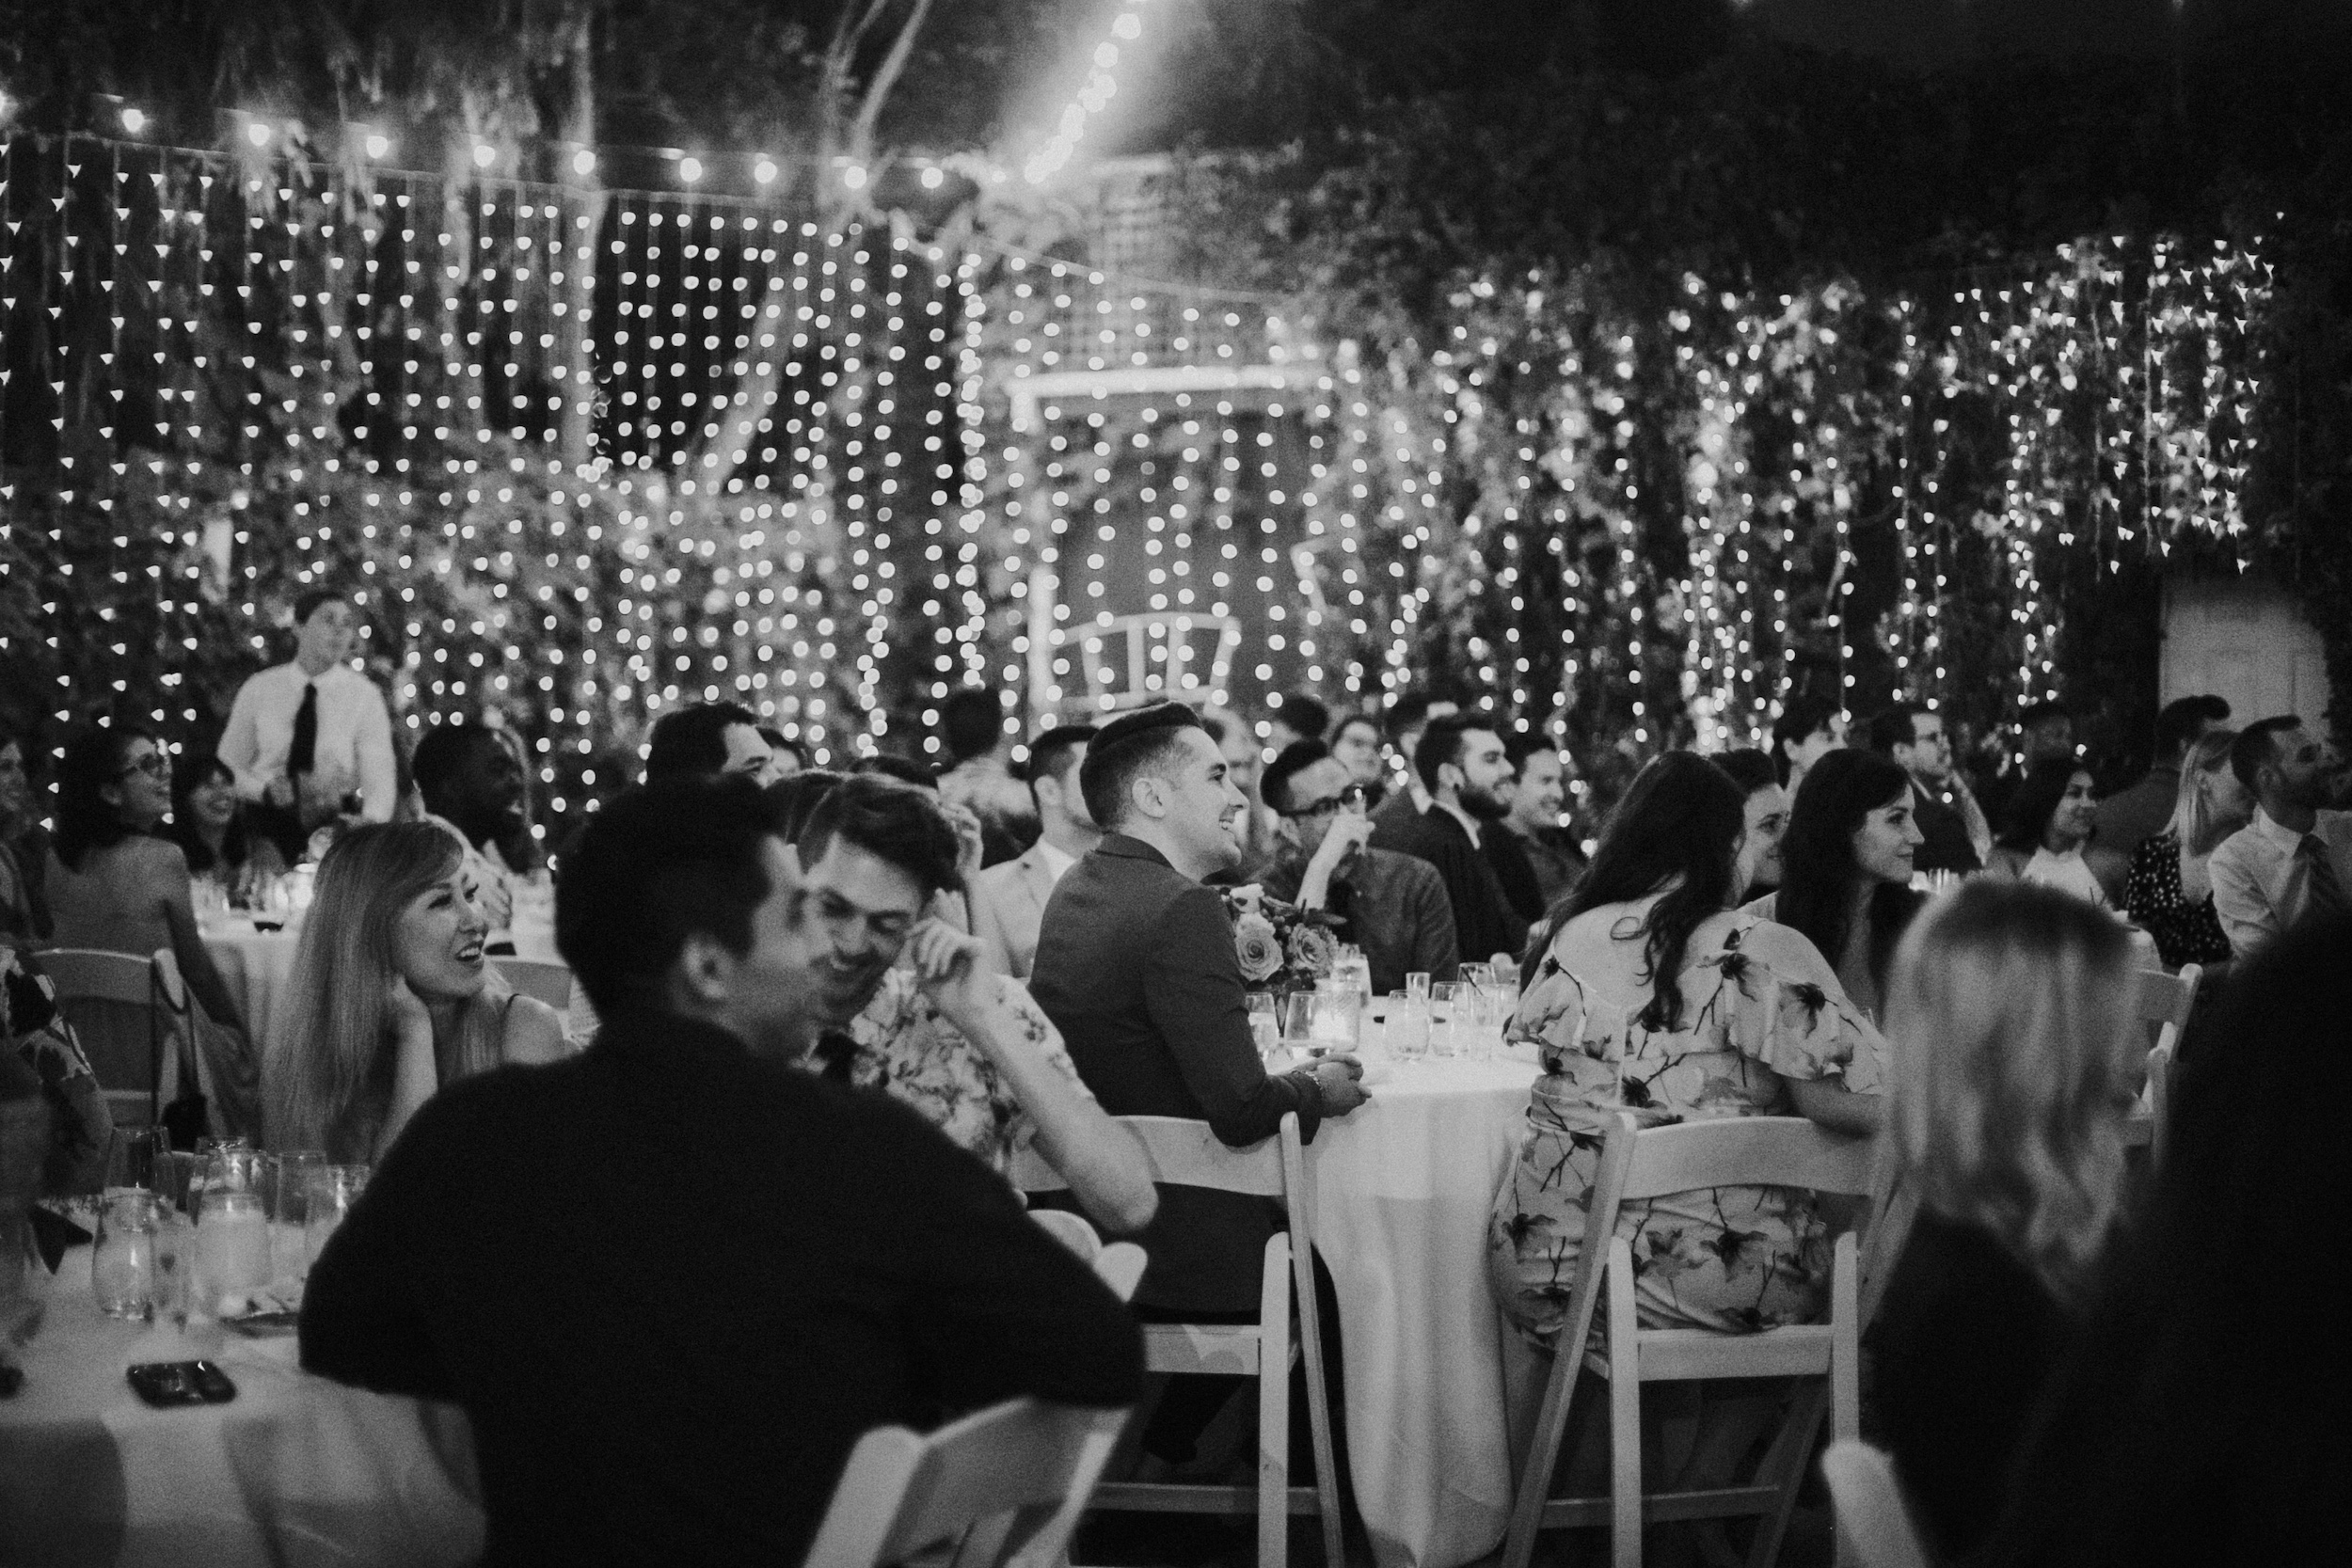 Photo showing our guests seated at the dinner tables in black and white. Beautiful!